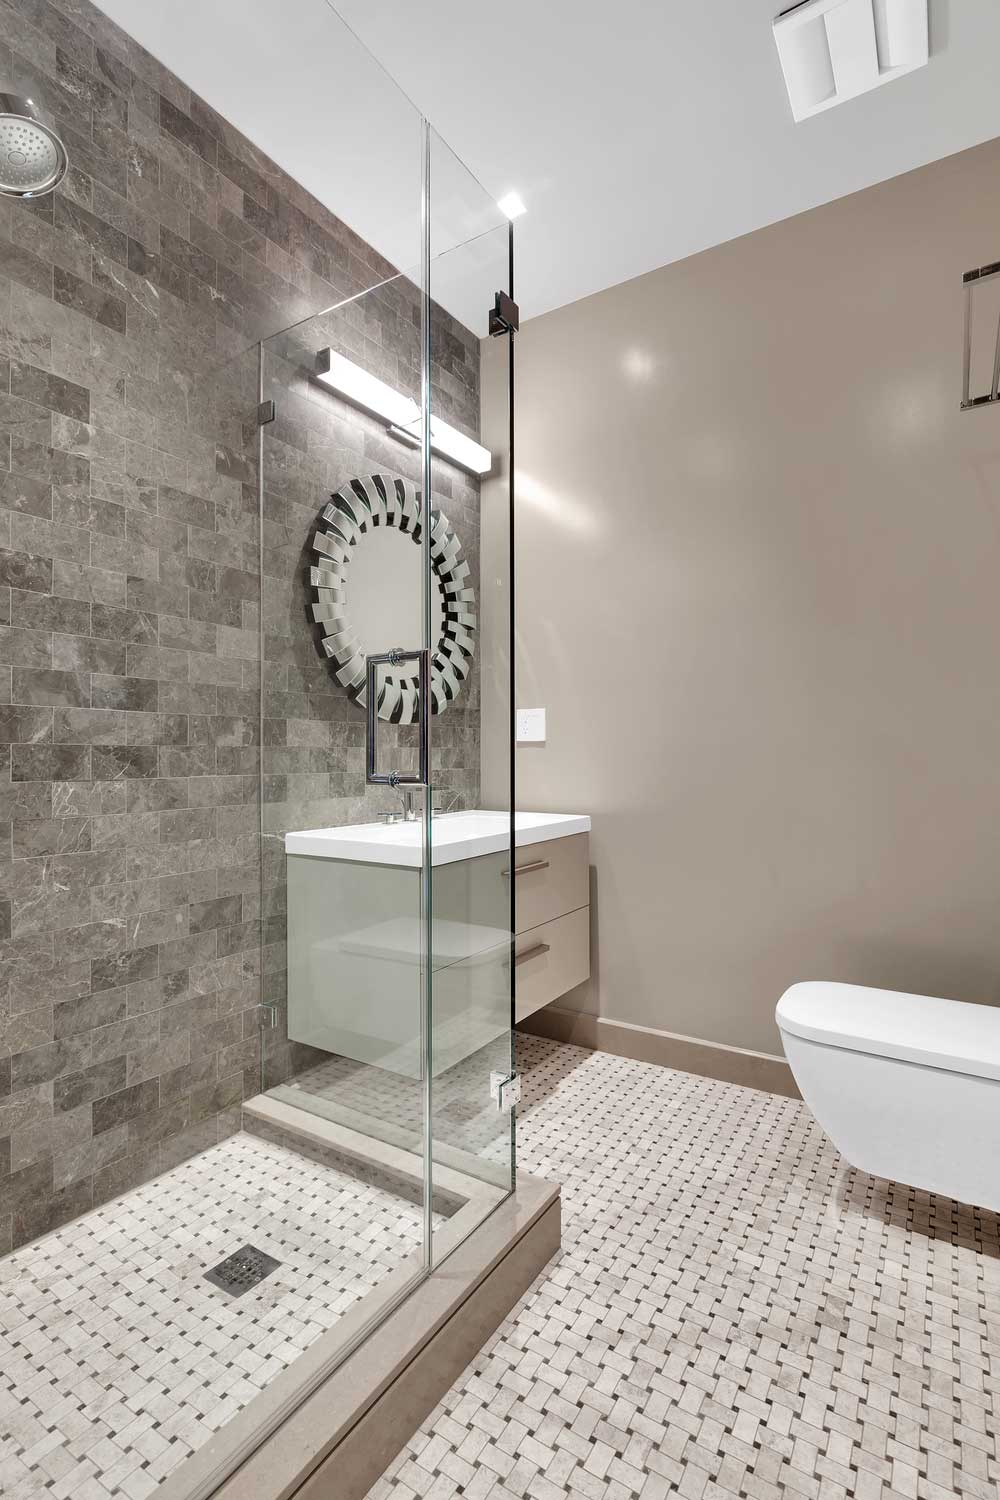 707-park-avenue-hoboken-brownstone-bath.jpg